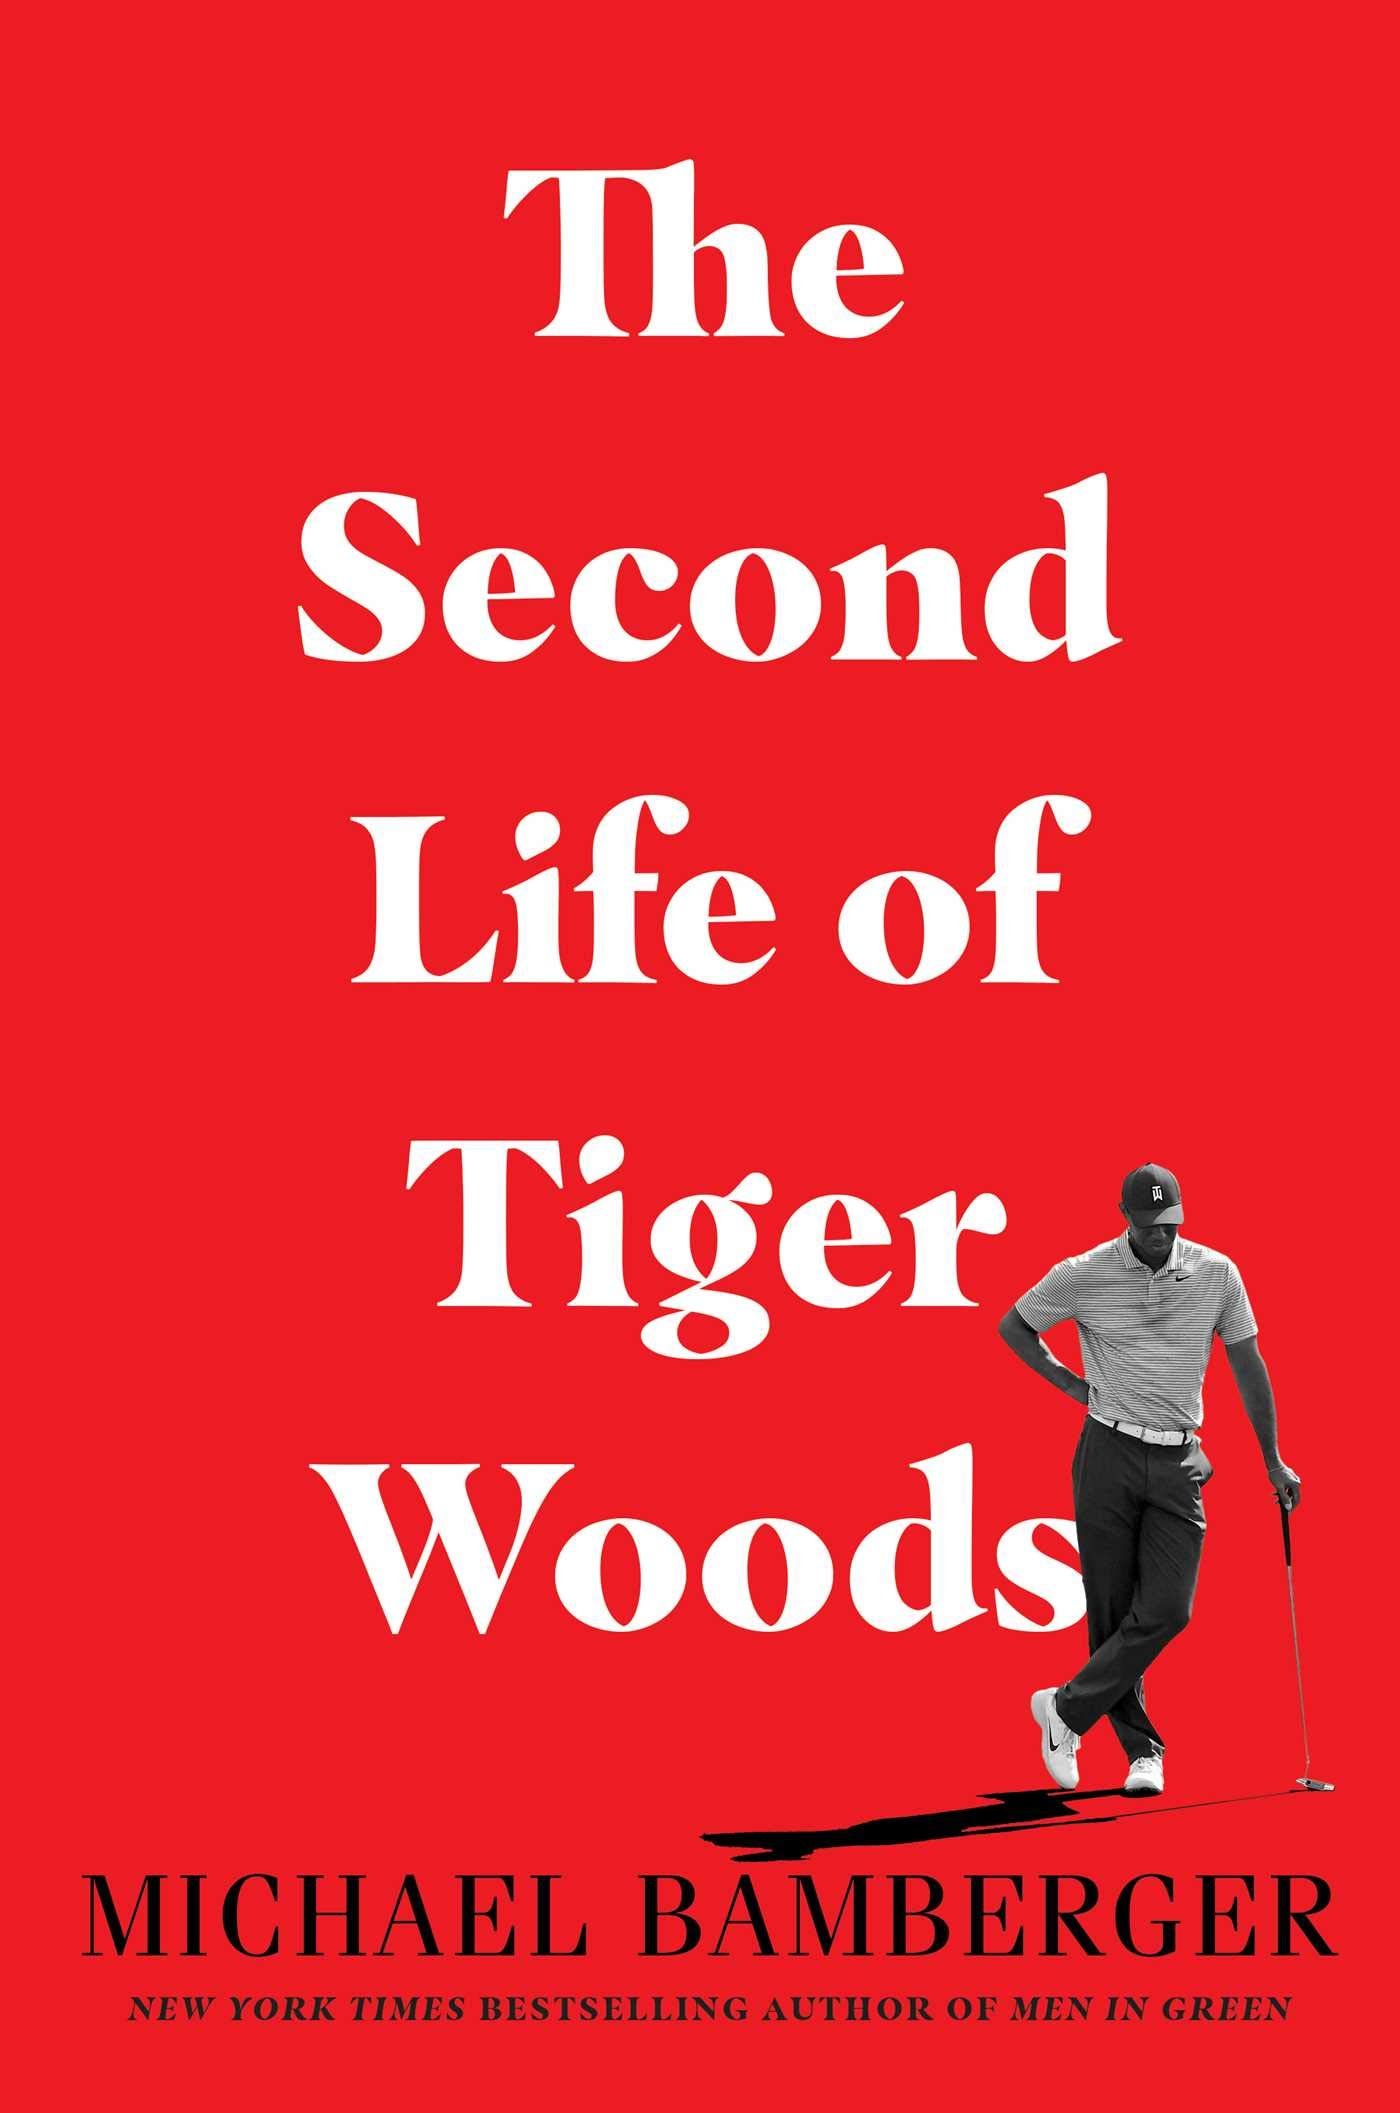 The Second Life of Tiger Woods: Amazon.de: Bamberger, Michael:  Fremdsprachige Bücher